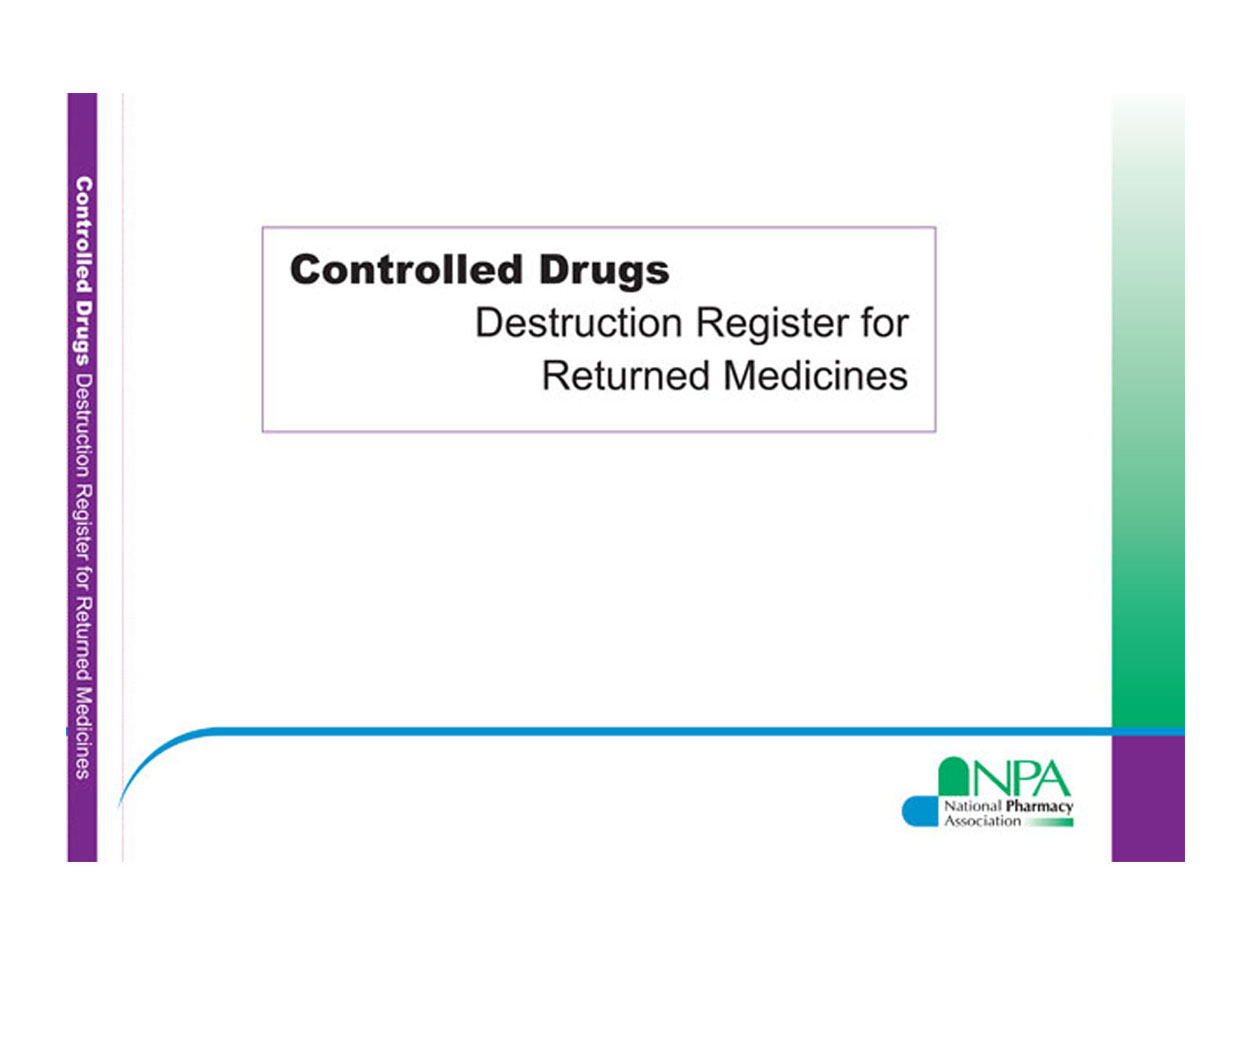 Controlled Drugs Destruction Register